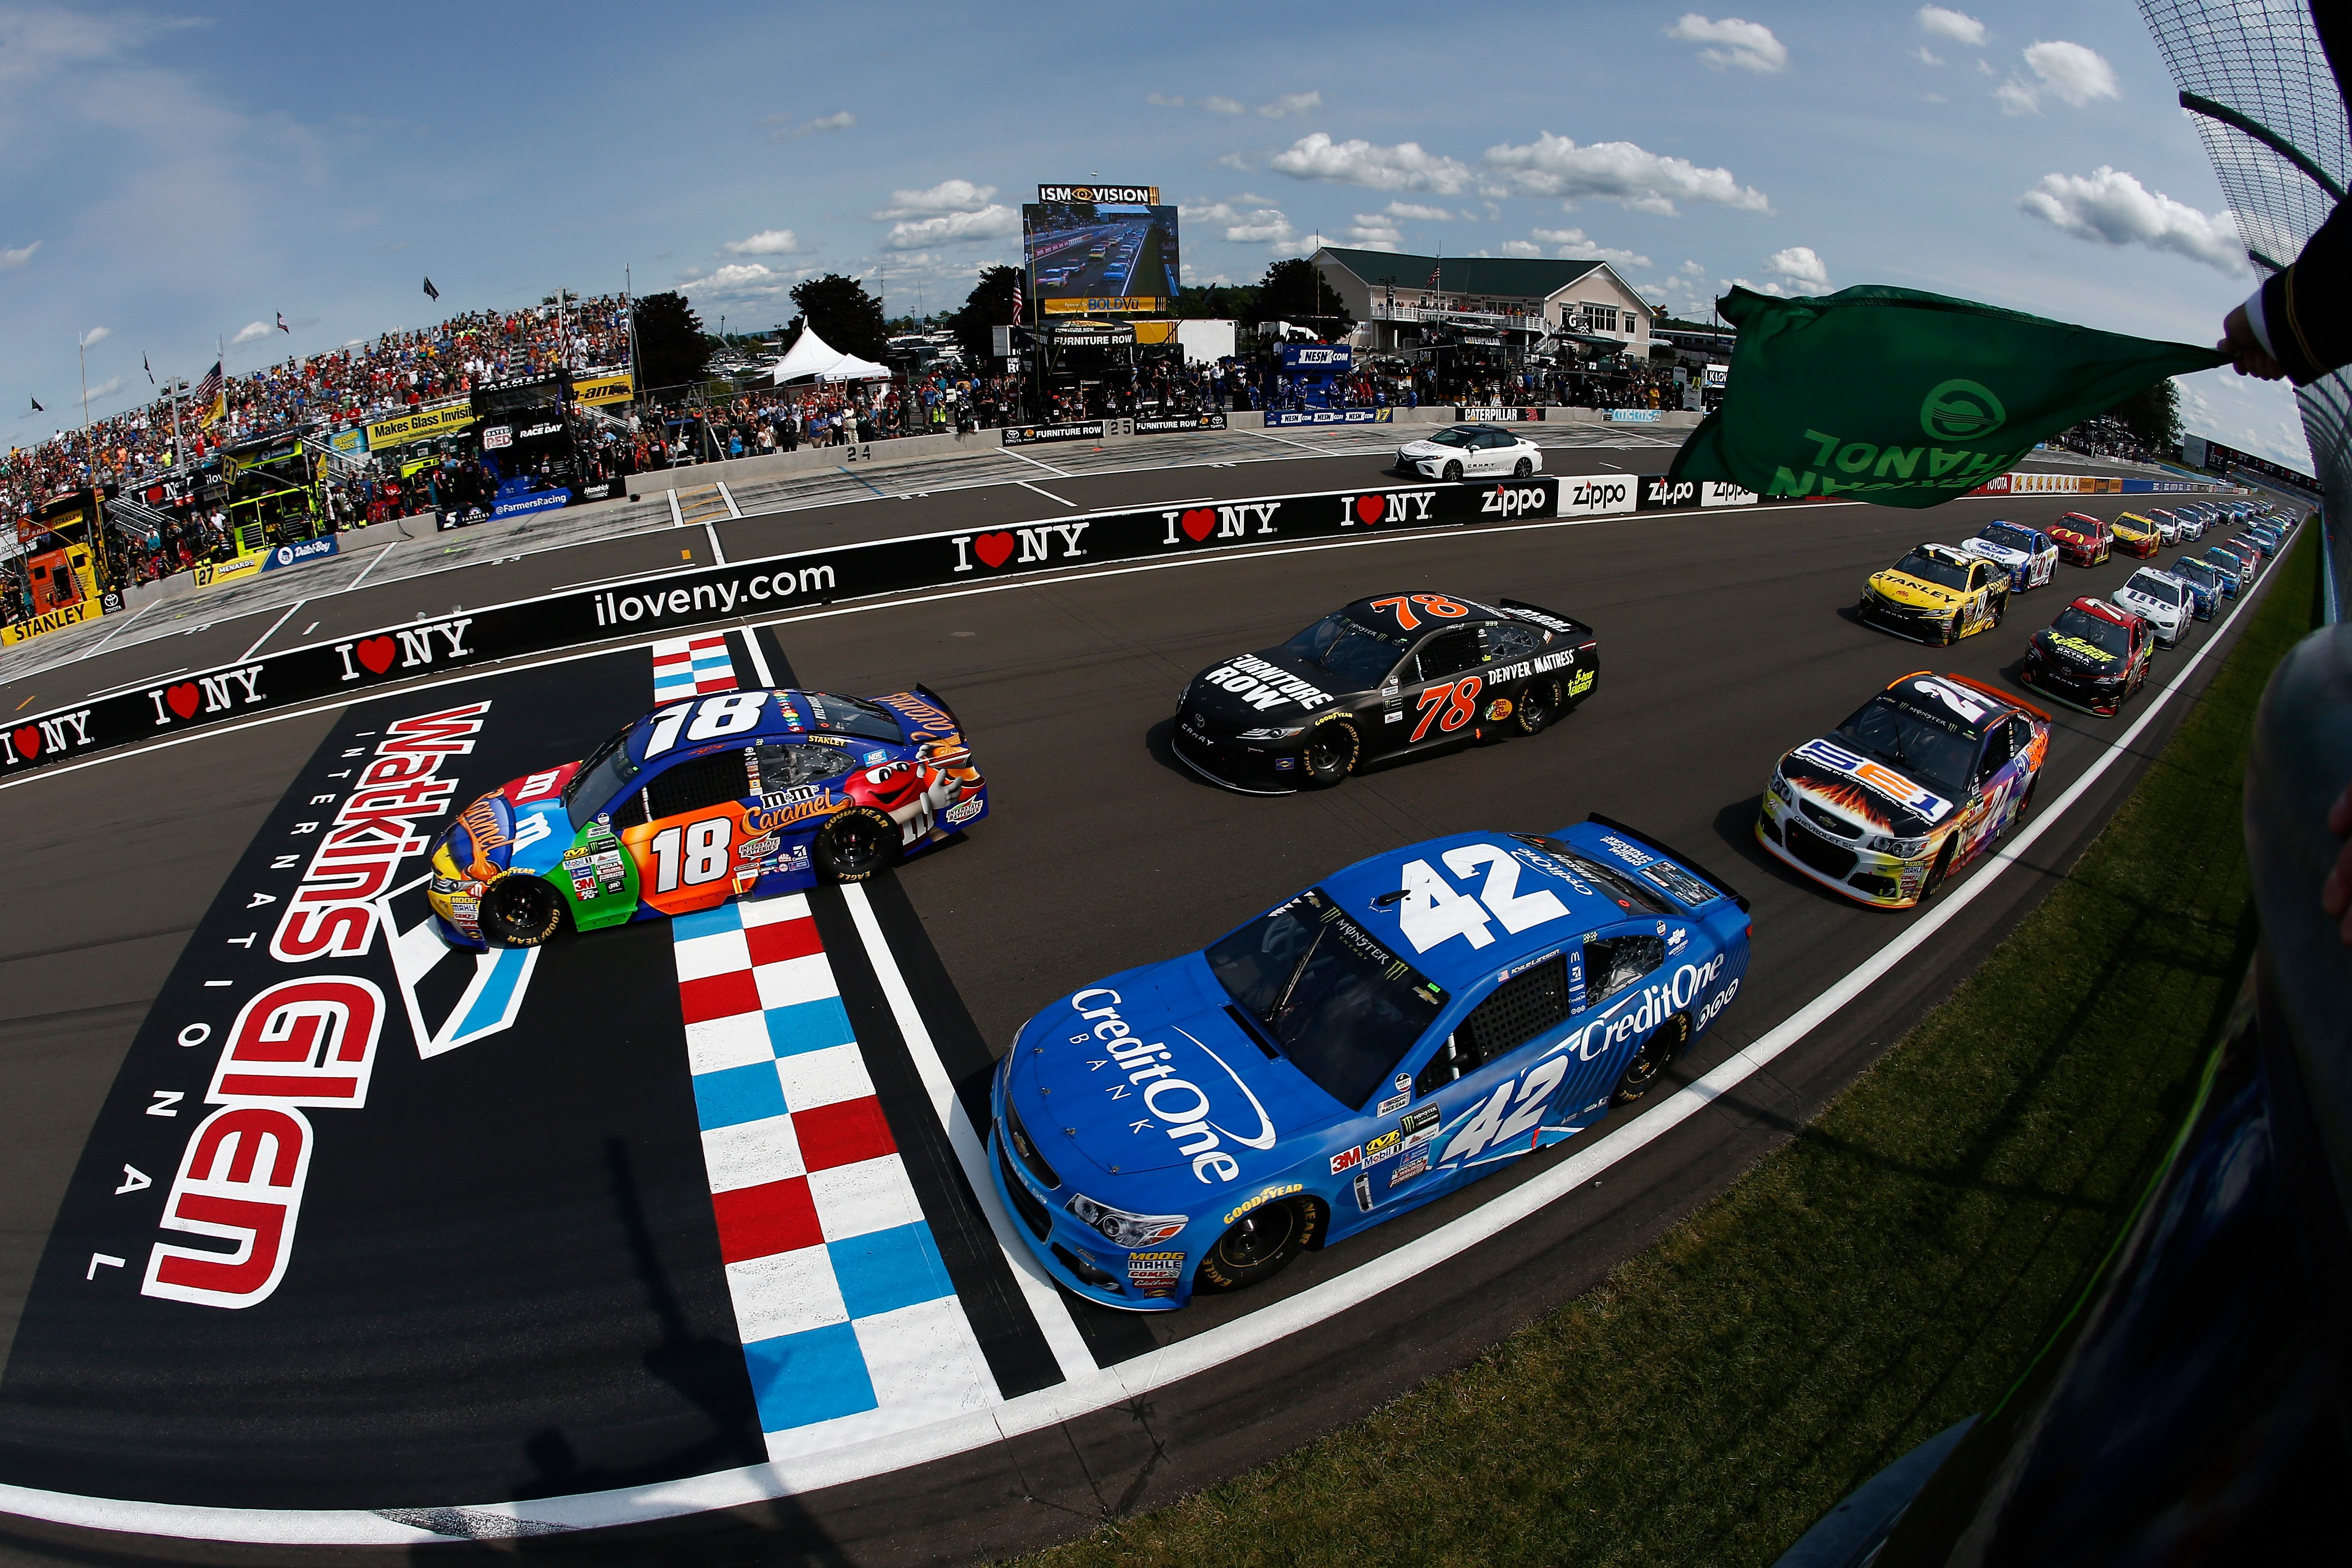 2017 The Glen results - NASCAR Cup Series